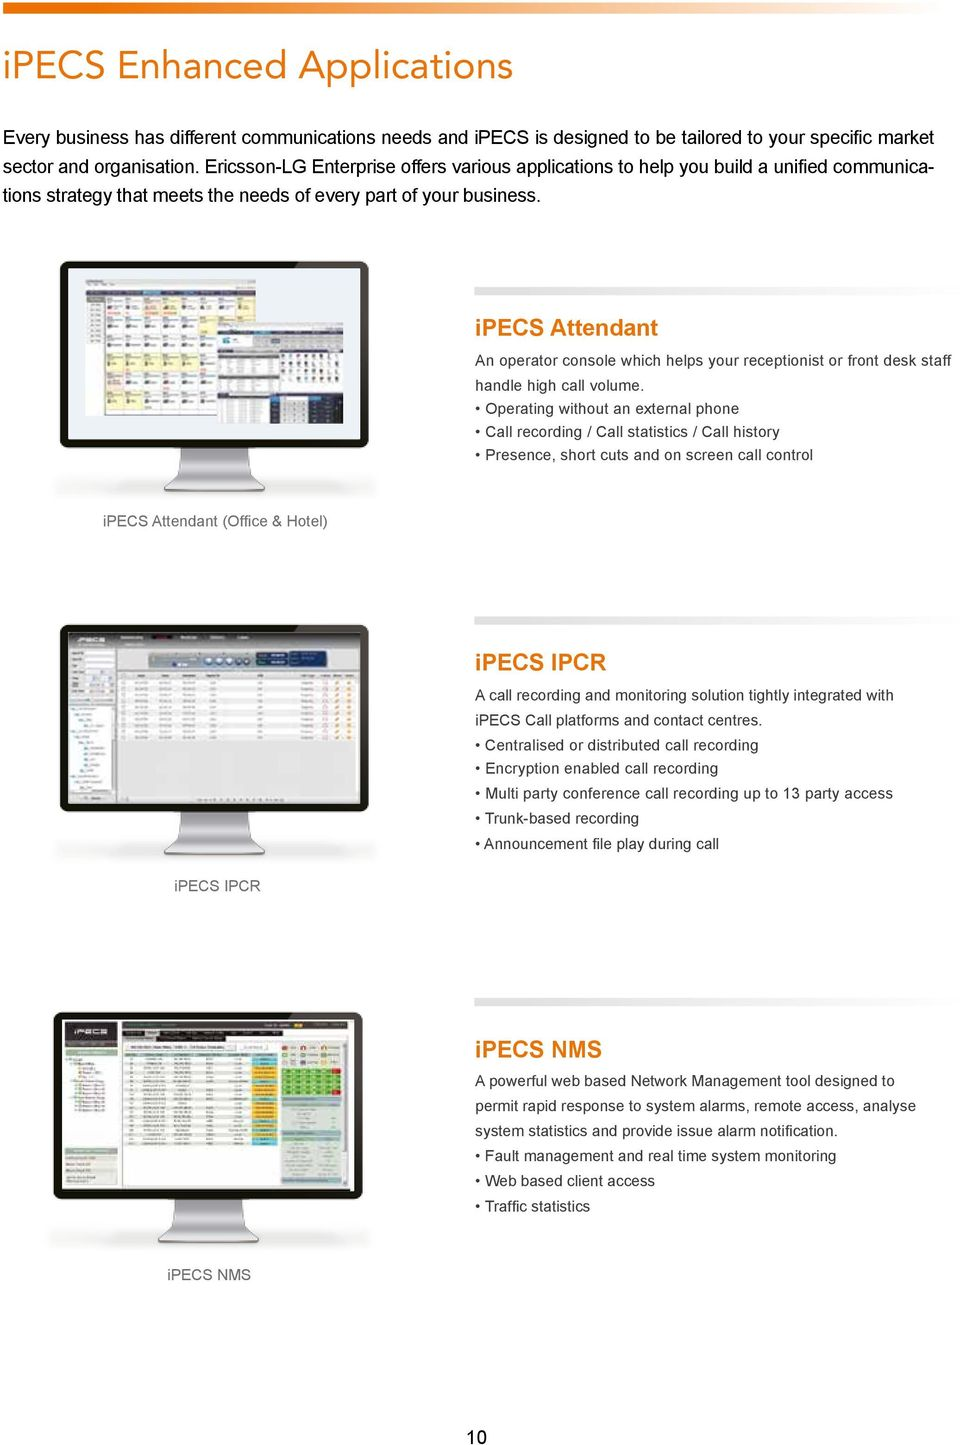 ipecs Attendant An operator console which helps your receptionist or front desk staff handle high call volume.